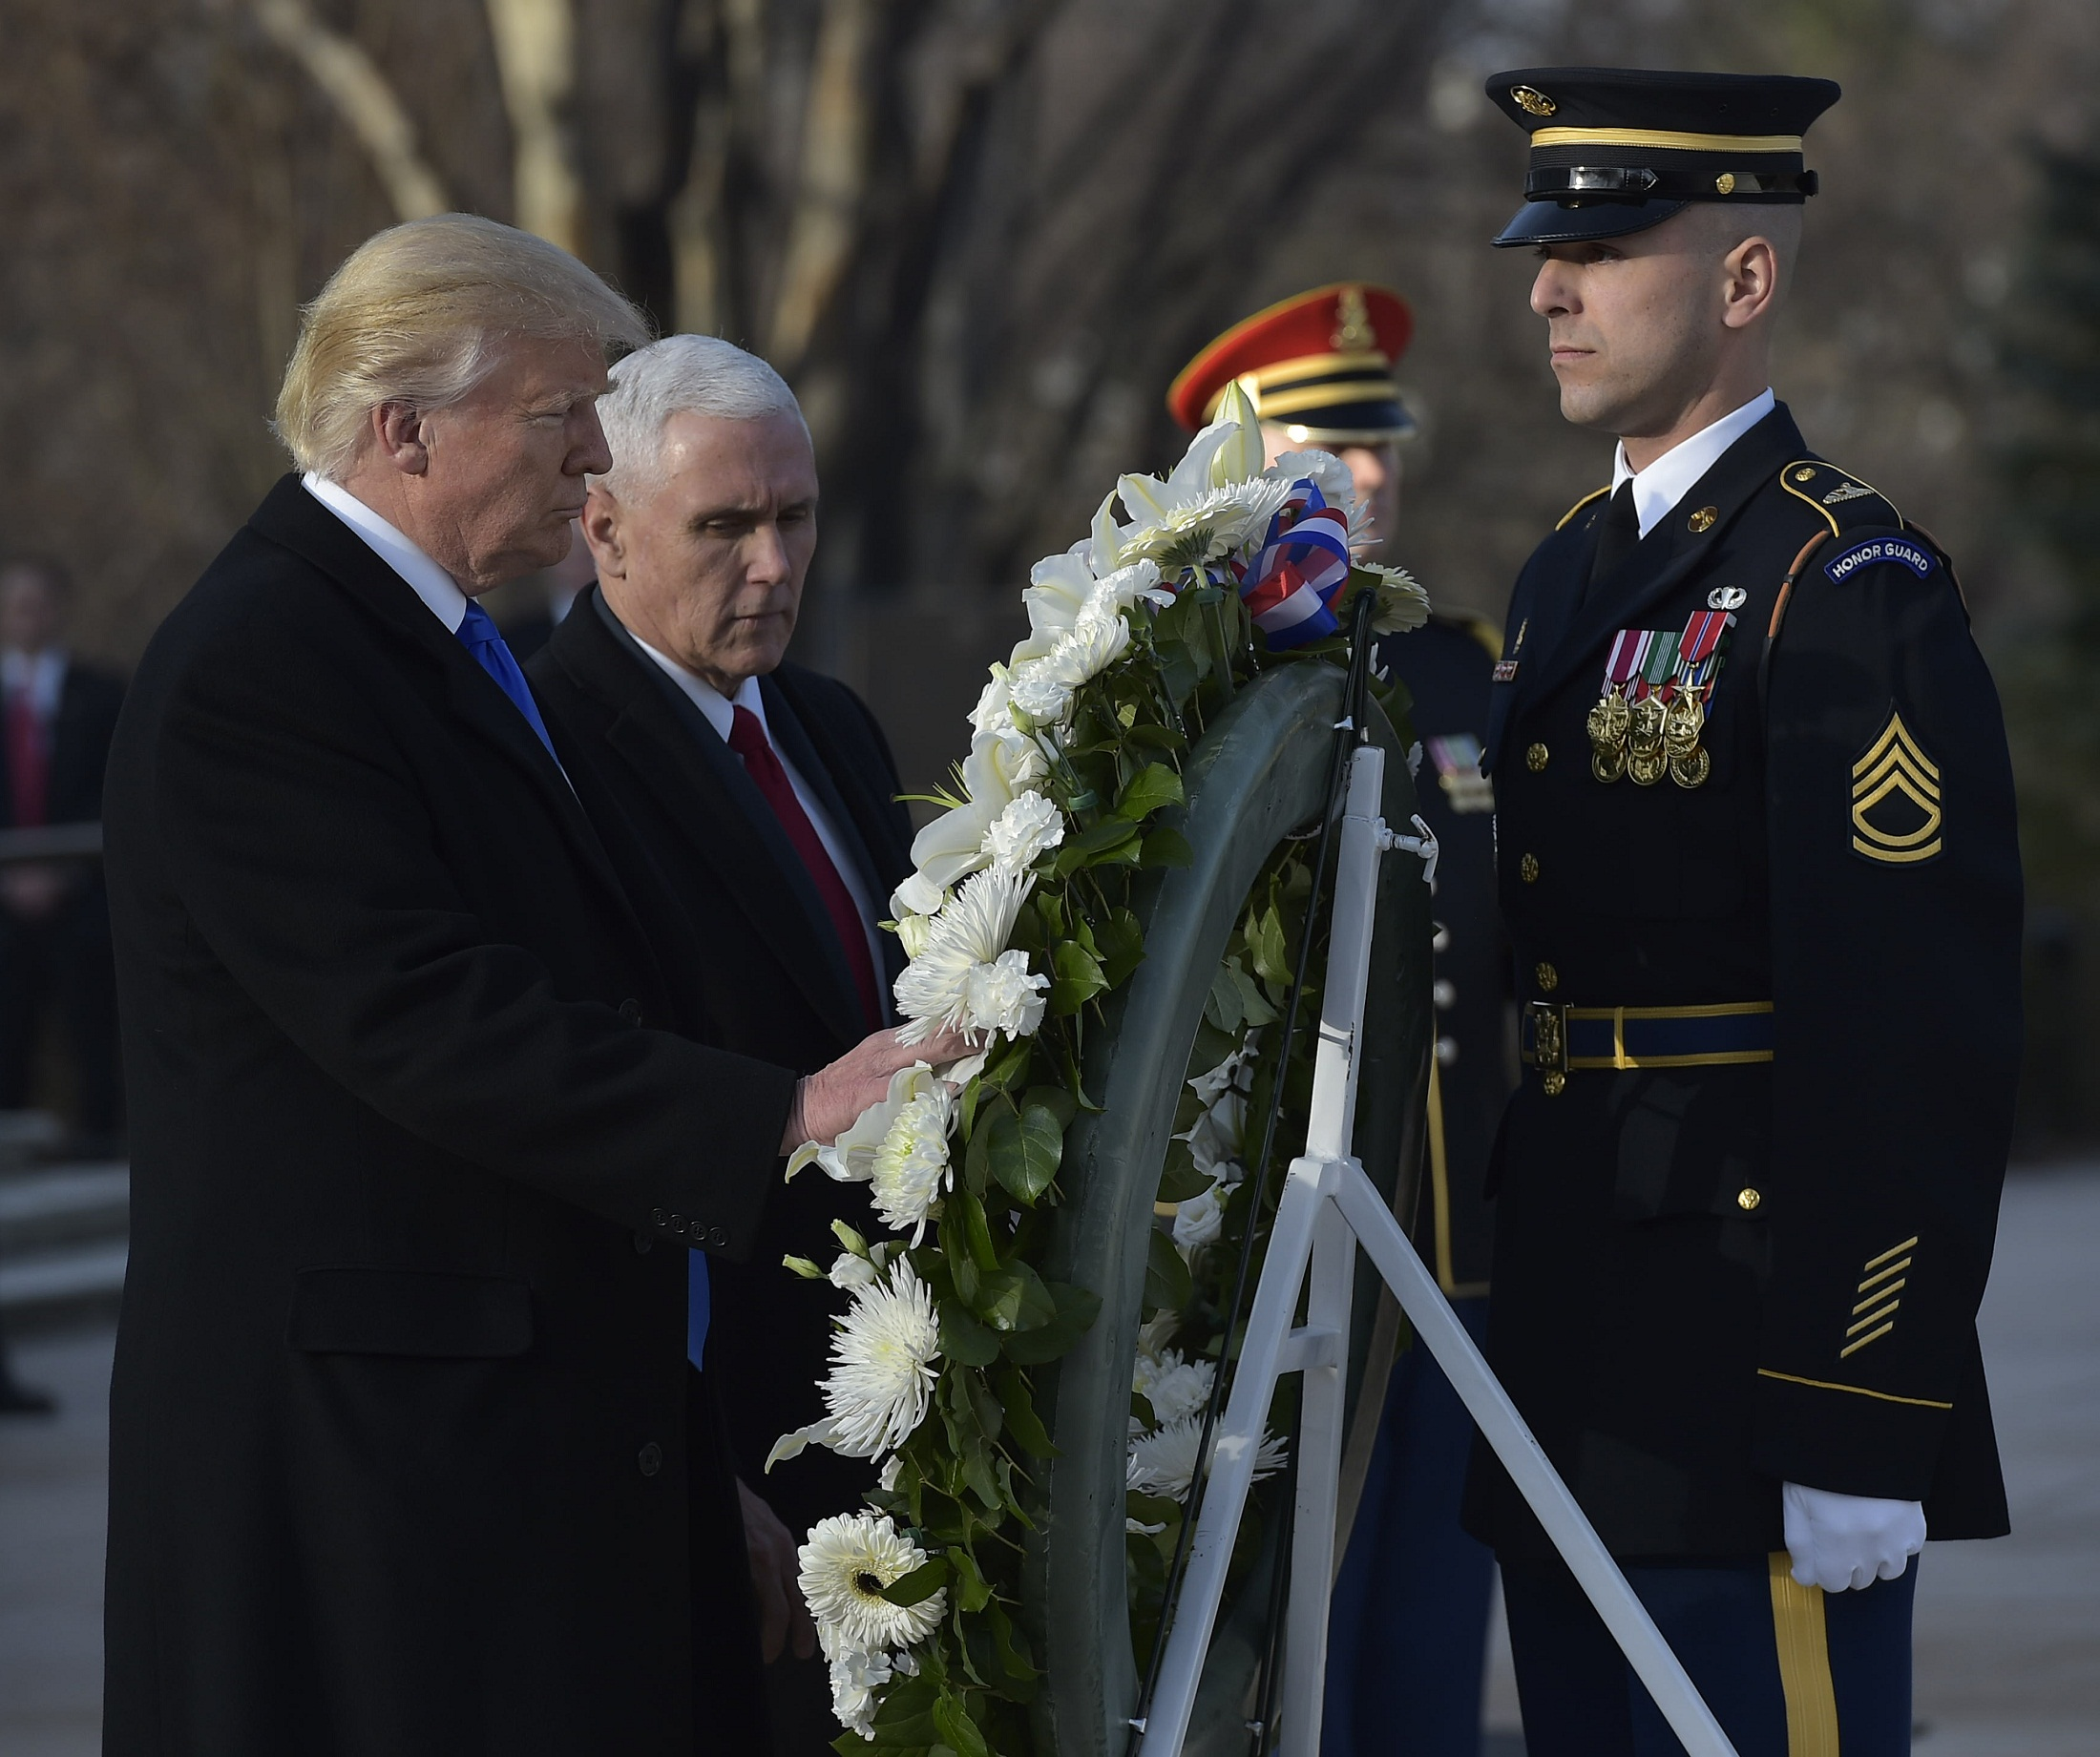 US President-elect Donald Trump and Vice President-elect Mike Pence take part in a wreath-laying ceremony at Arlington National Cemetery in Arlington,Virginia, on January 19, 2017. / AFP PHOTO / MANDEL NGAN